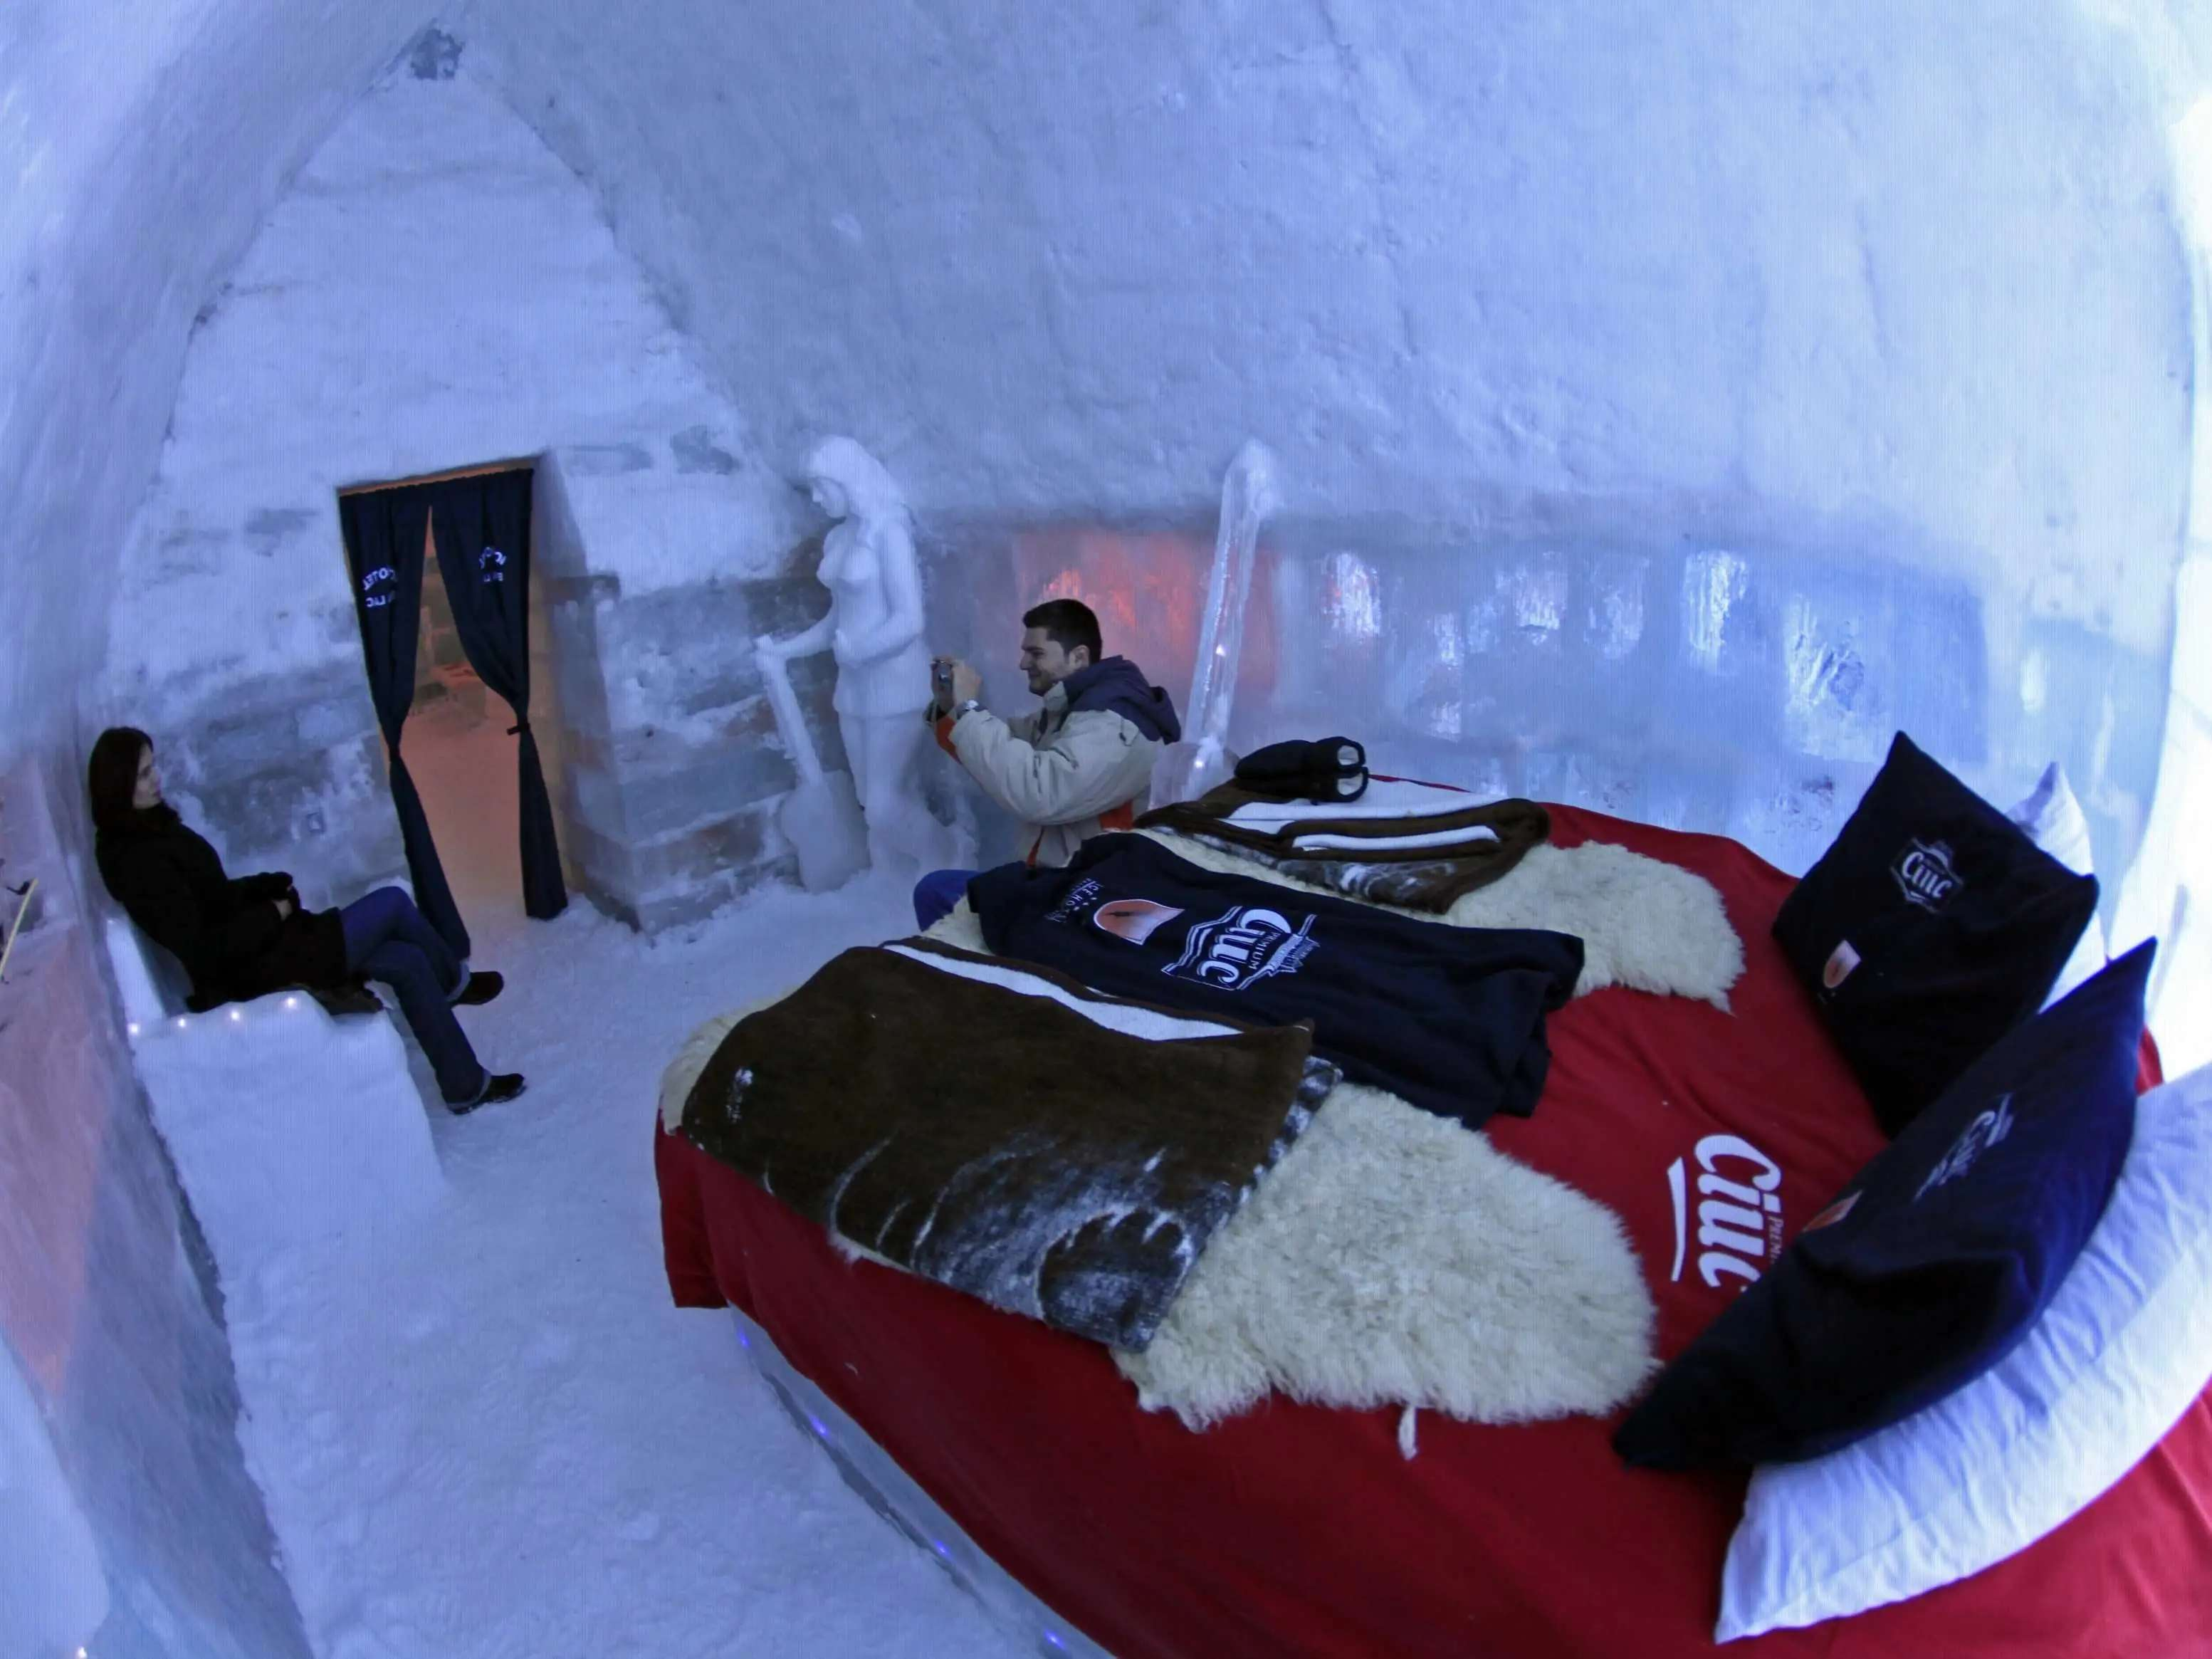 Spend a night cozied up in an ice hotel, like the Ice Hotel Romania in the Fagaras Mountains near Bucharest.